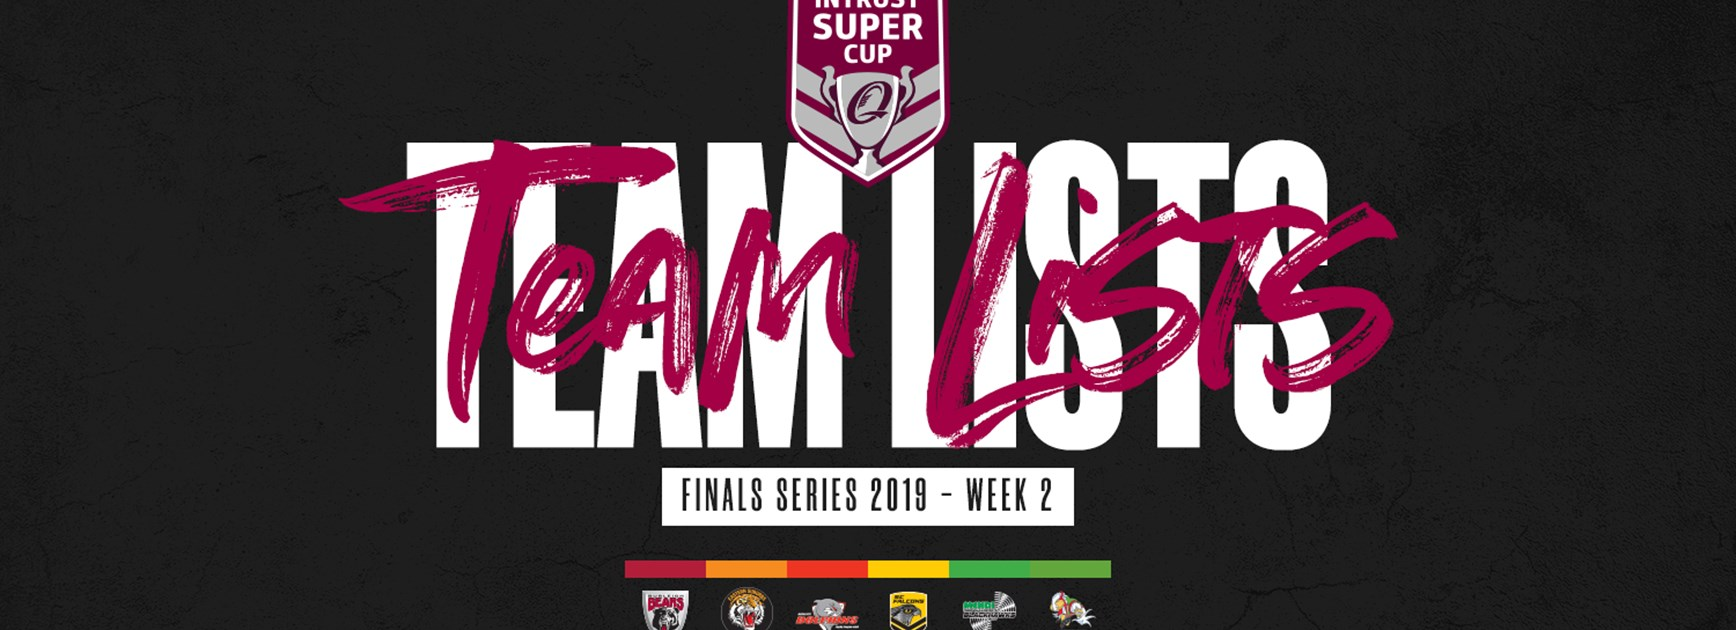 Intrust Super Cup finals week two teams